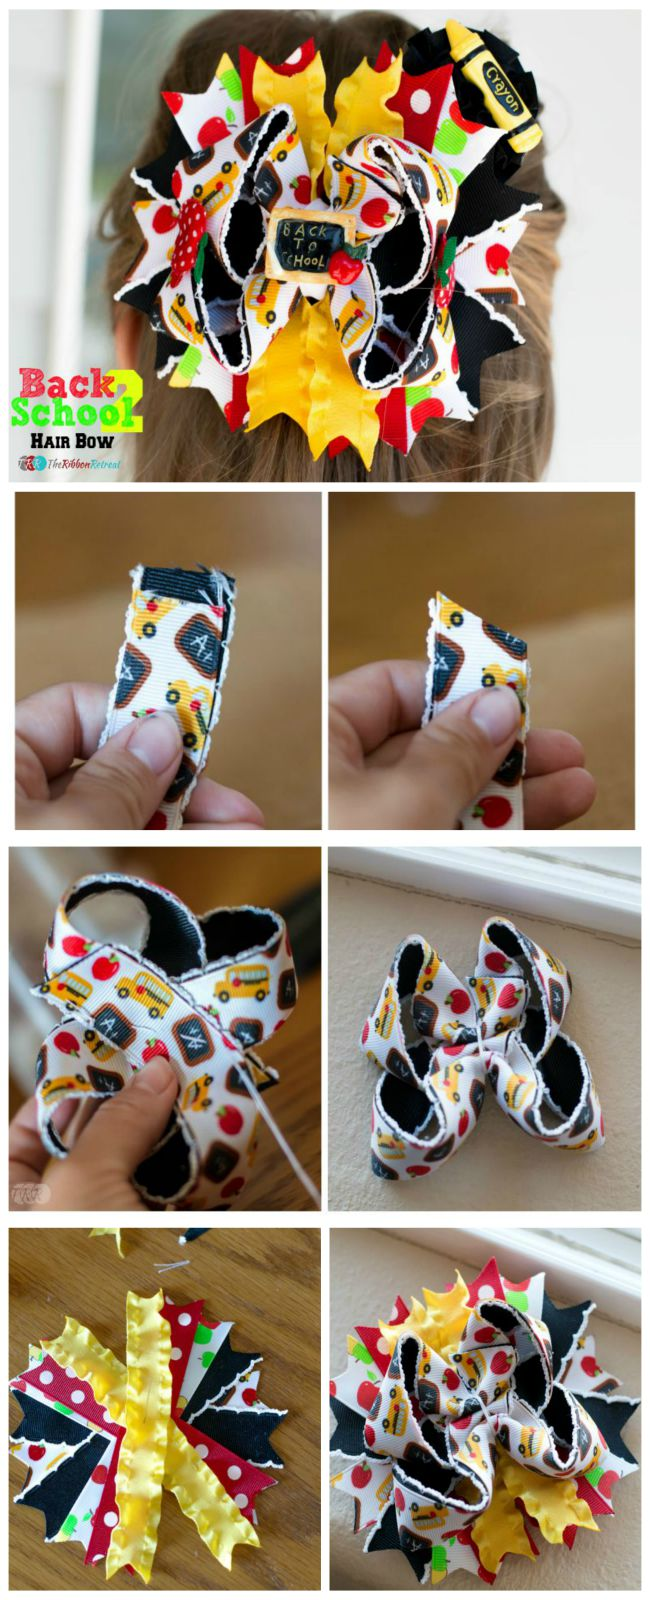 Back To School Hair Bow - The Ribbon Retreat Blog